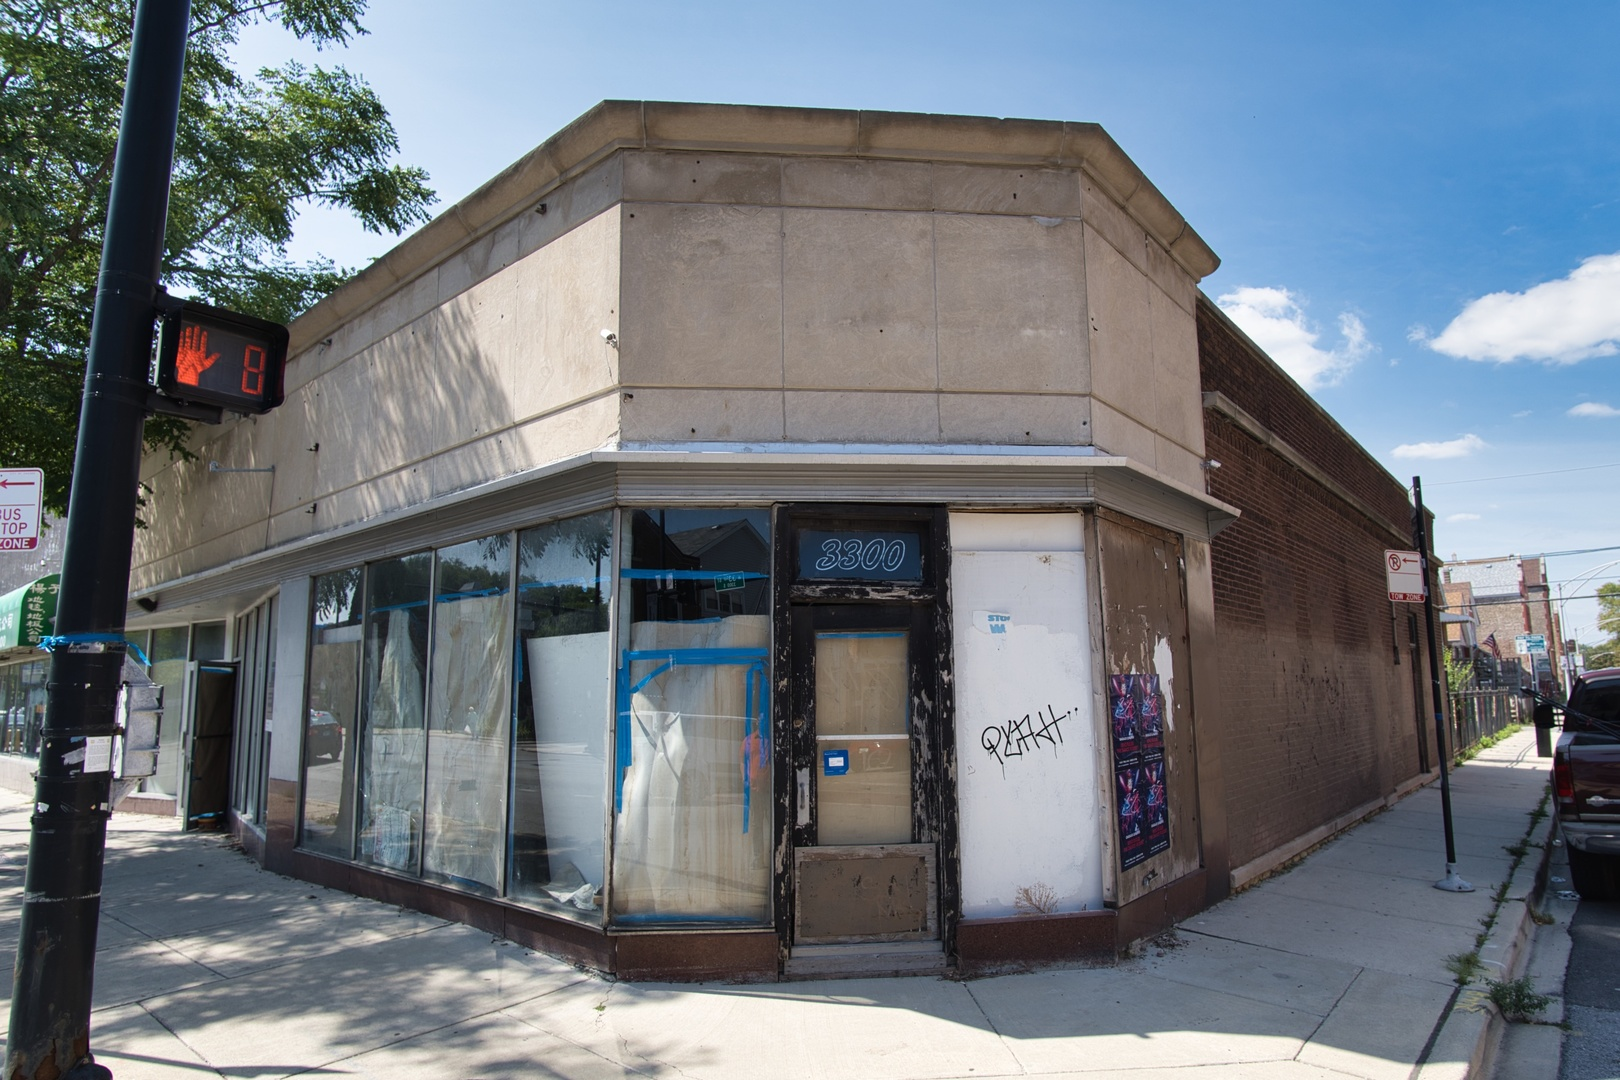 3300 S Halsted Street, Chicago, IL 60608